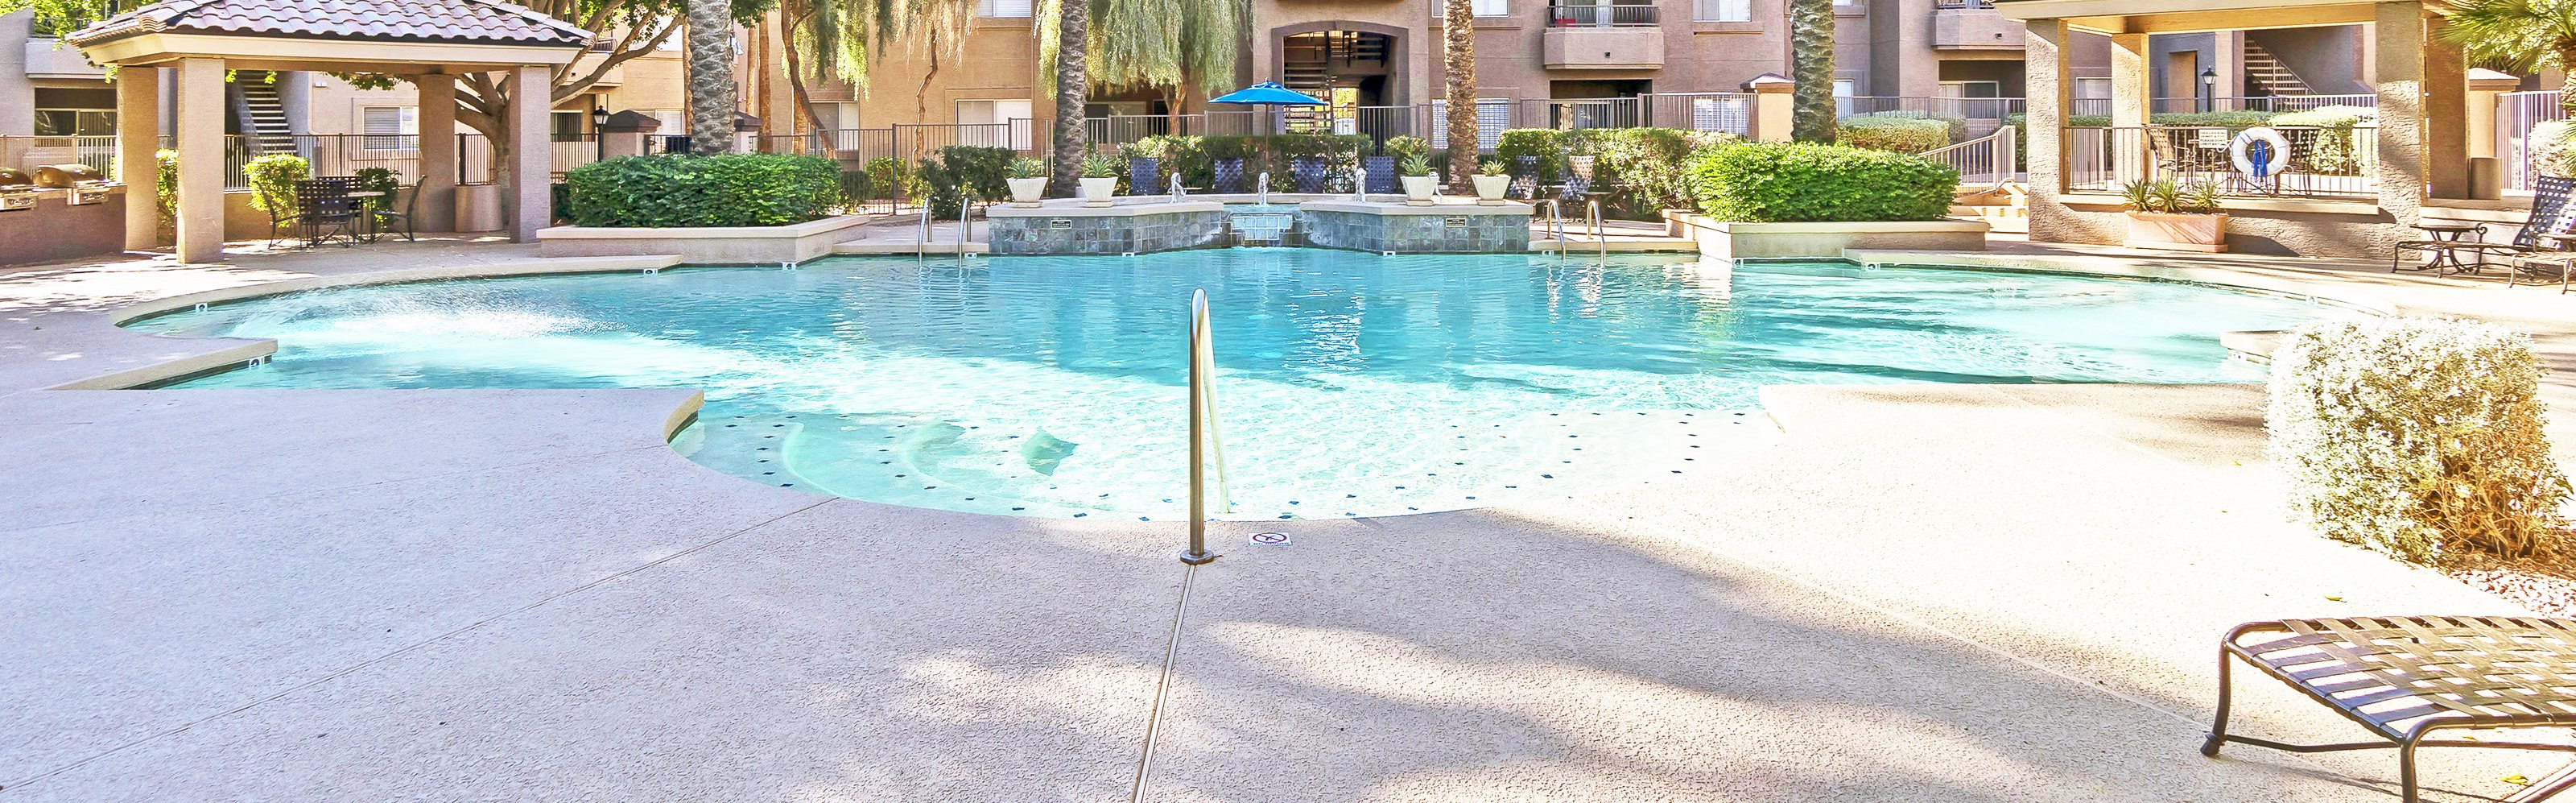 Sonterra Apartments at Paradise Valley pool area